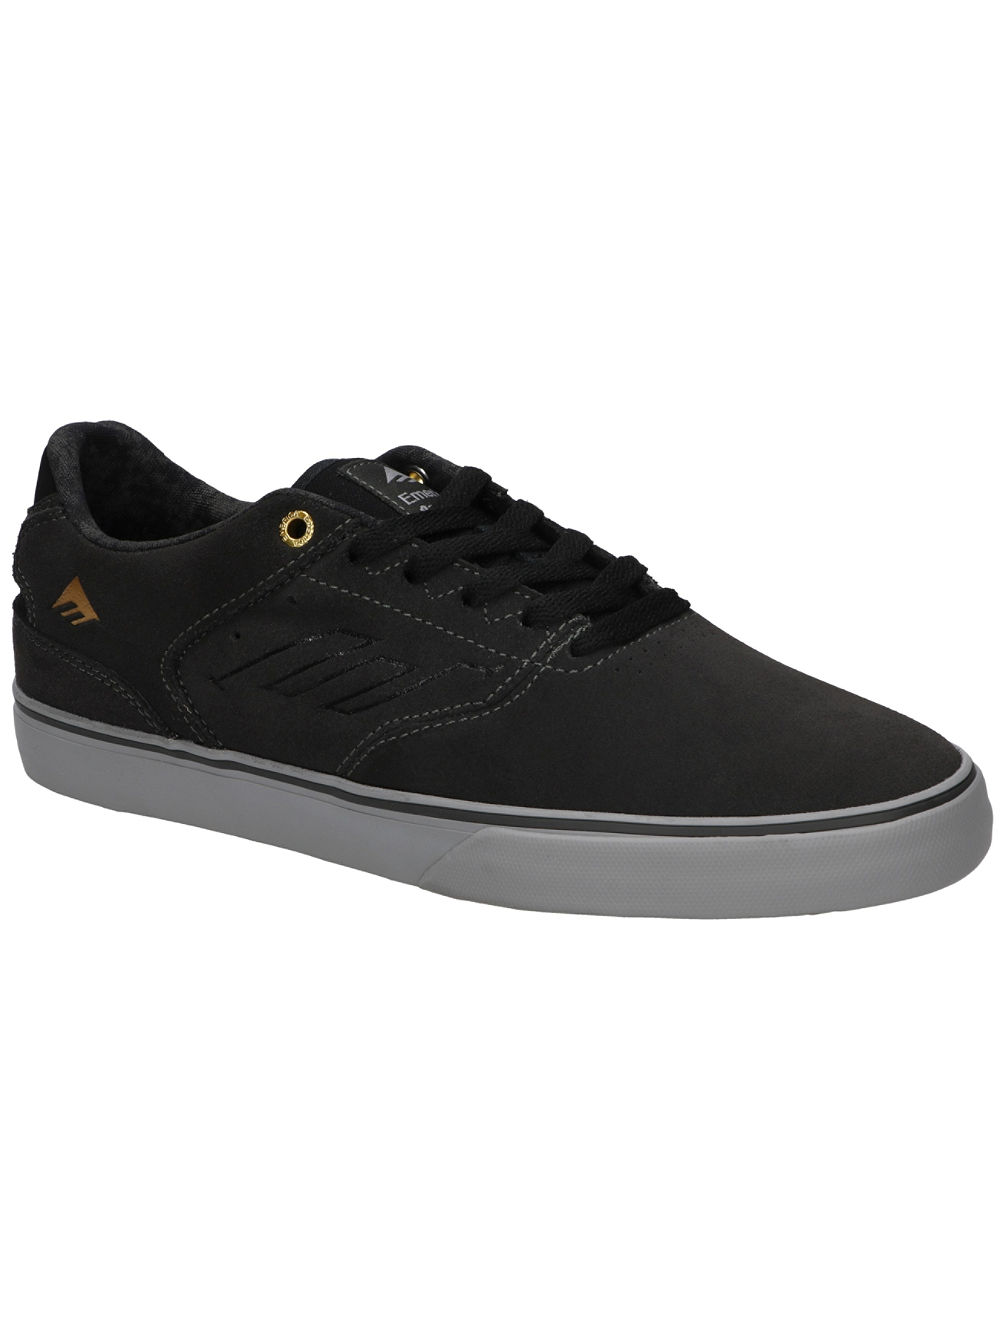 The Reynolds Low Vulc Skateschuhe